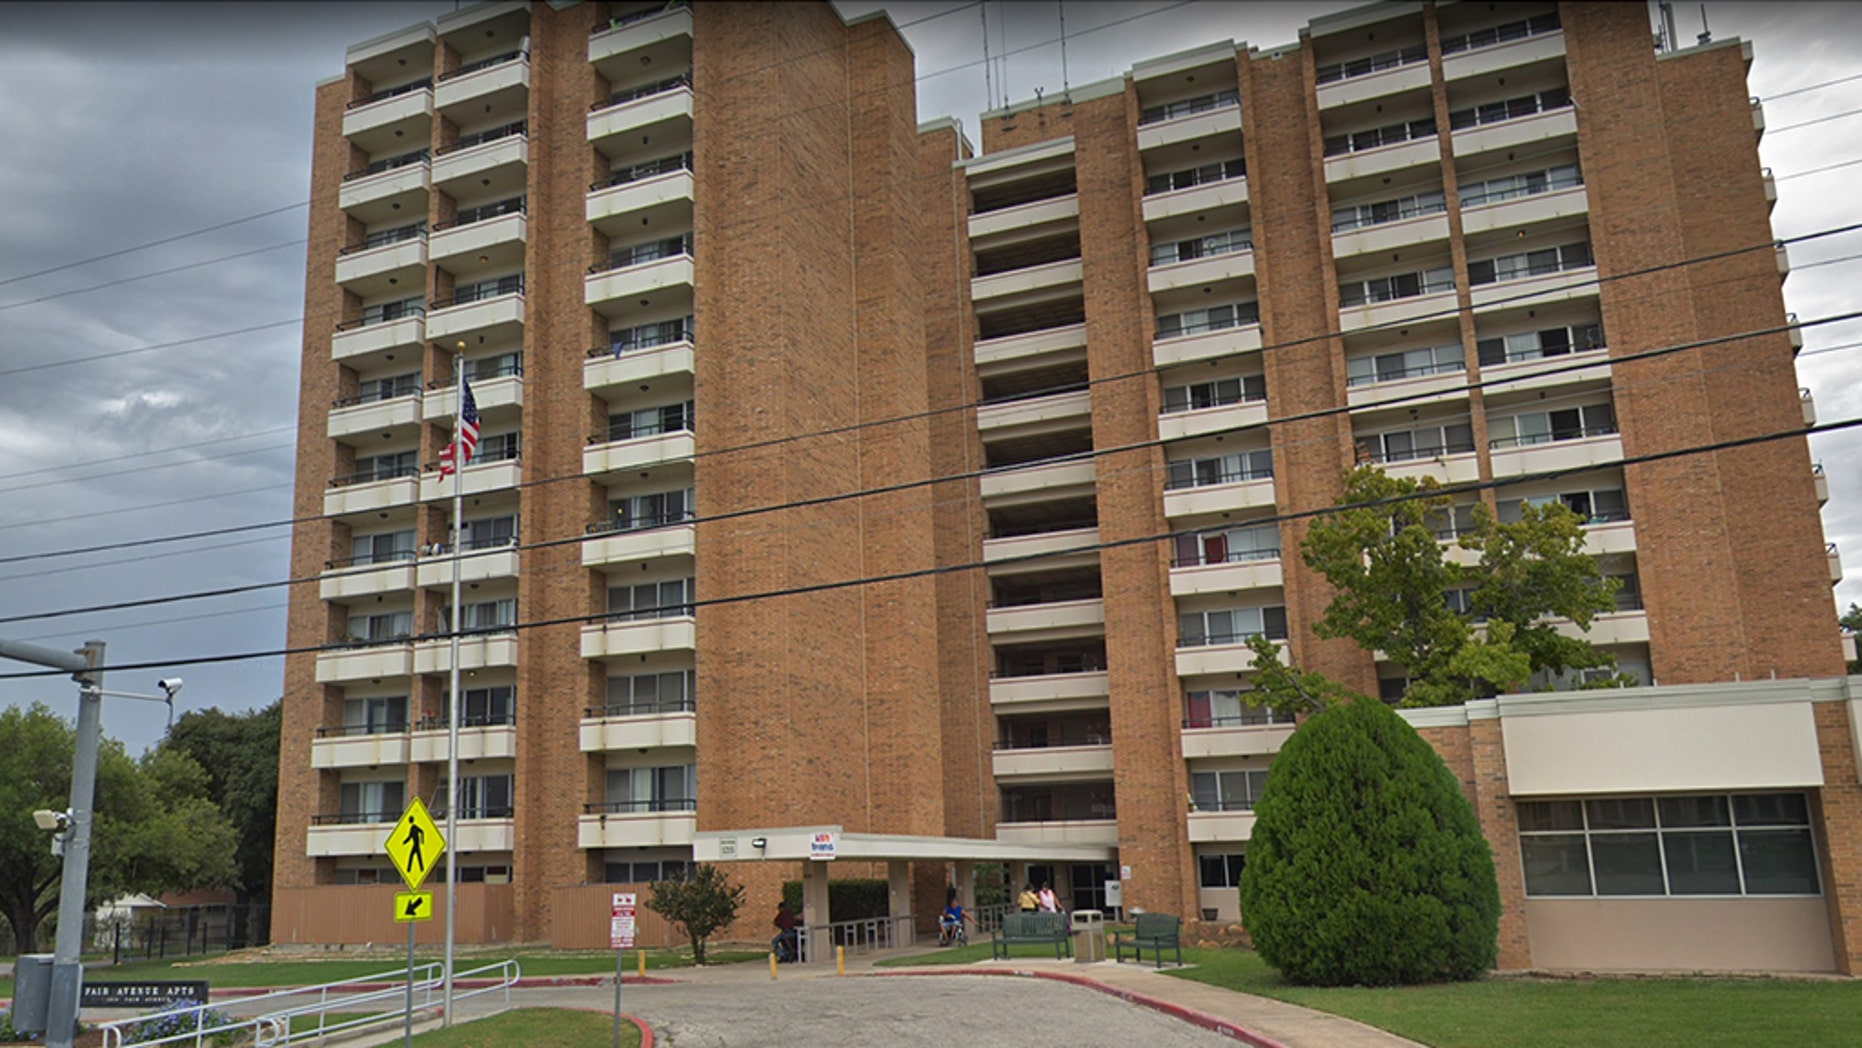 A grisly discovery -- a man's body in a closet -- was made in Texas on Thursday, authorities said.